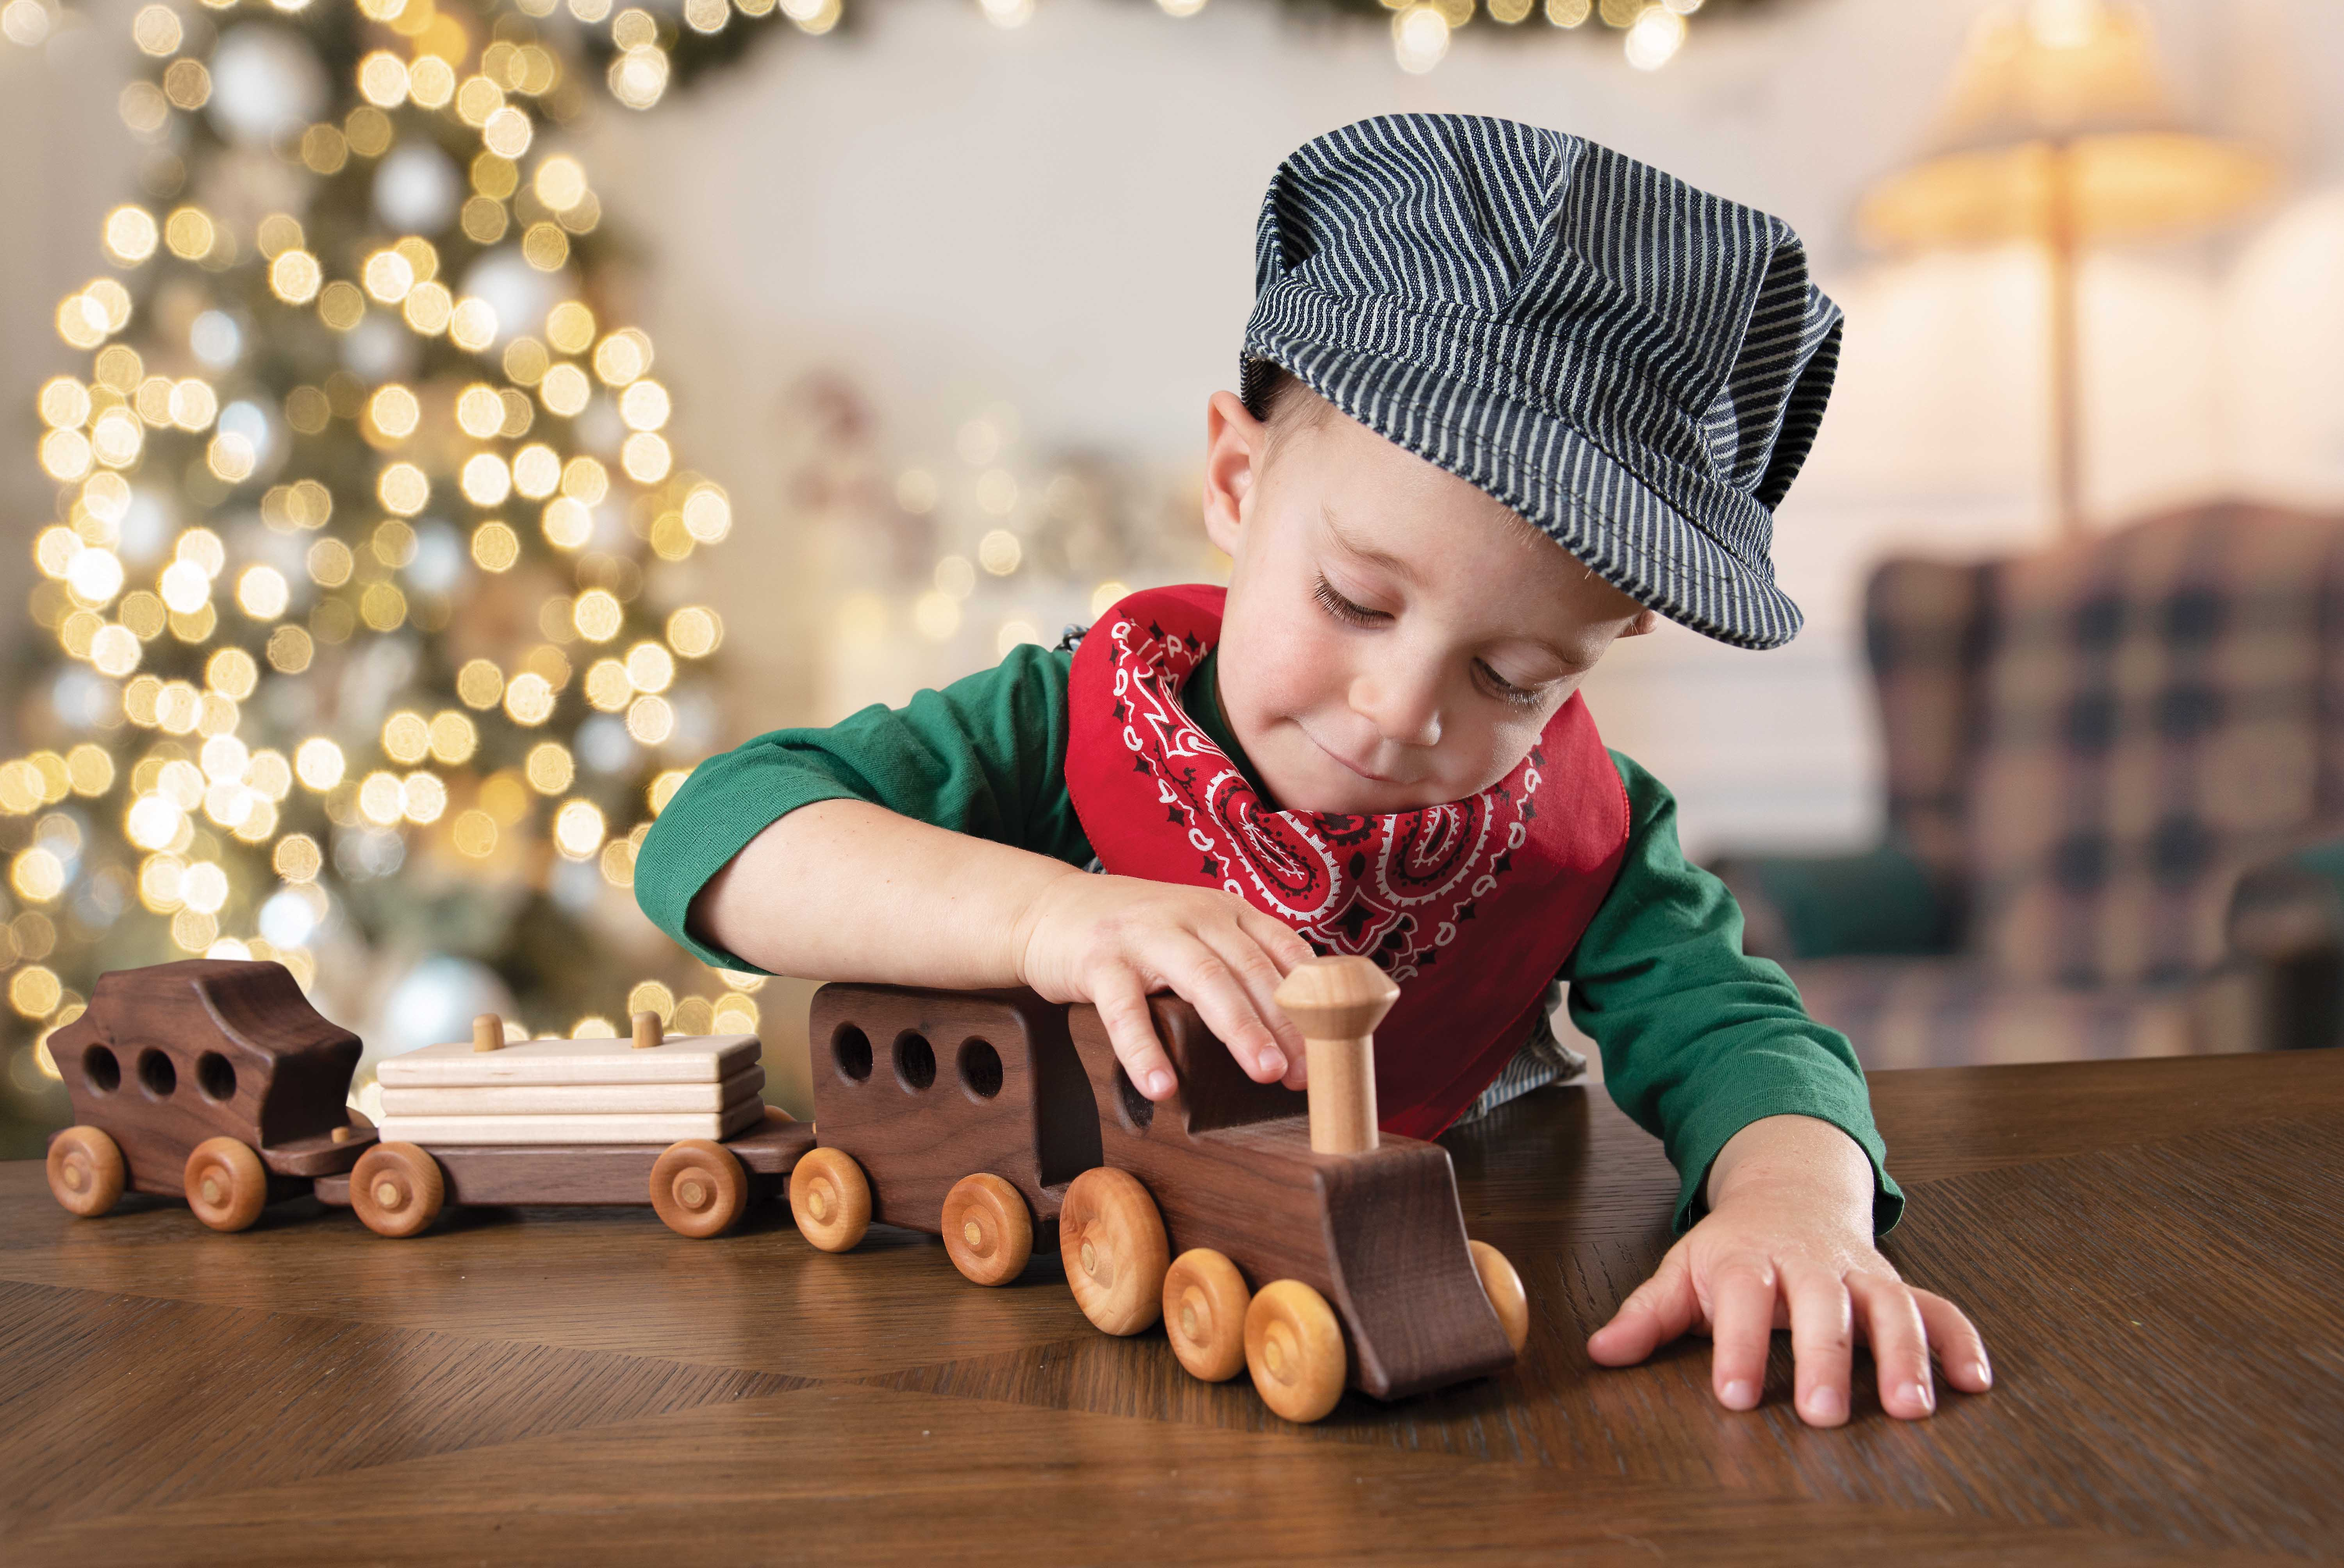 Boy playing with a toy train